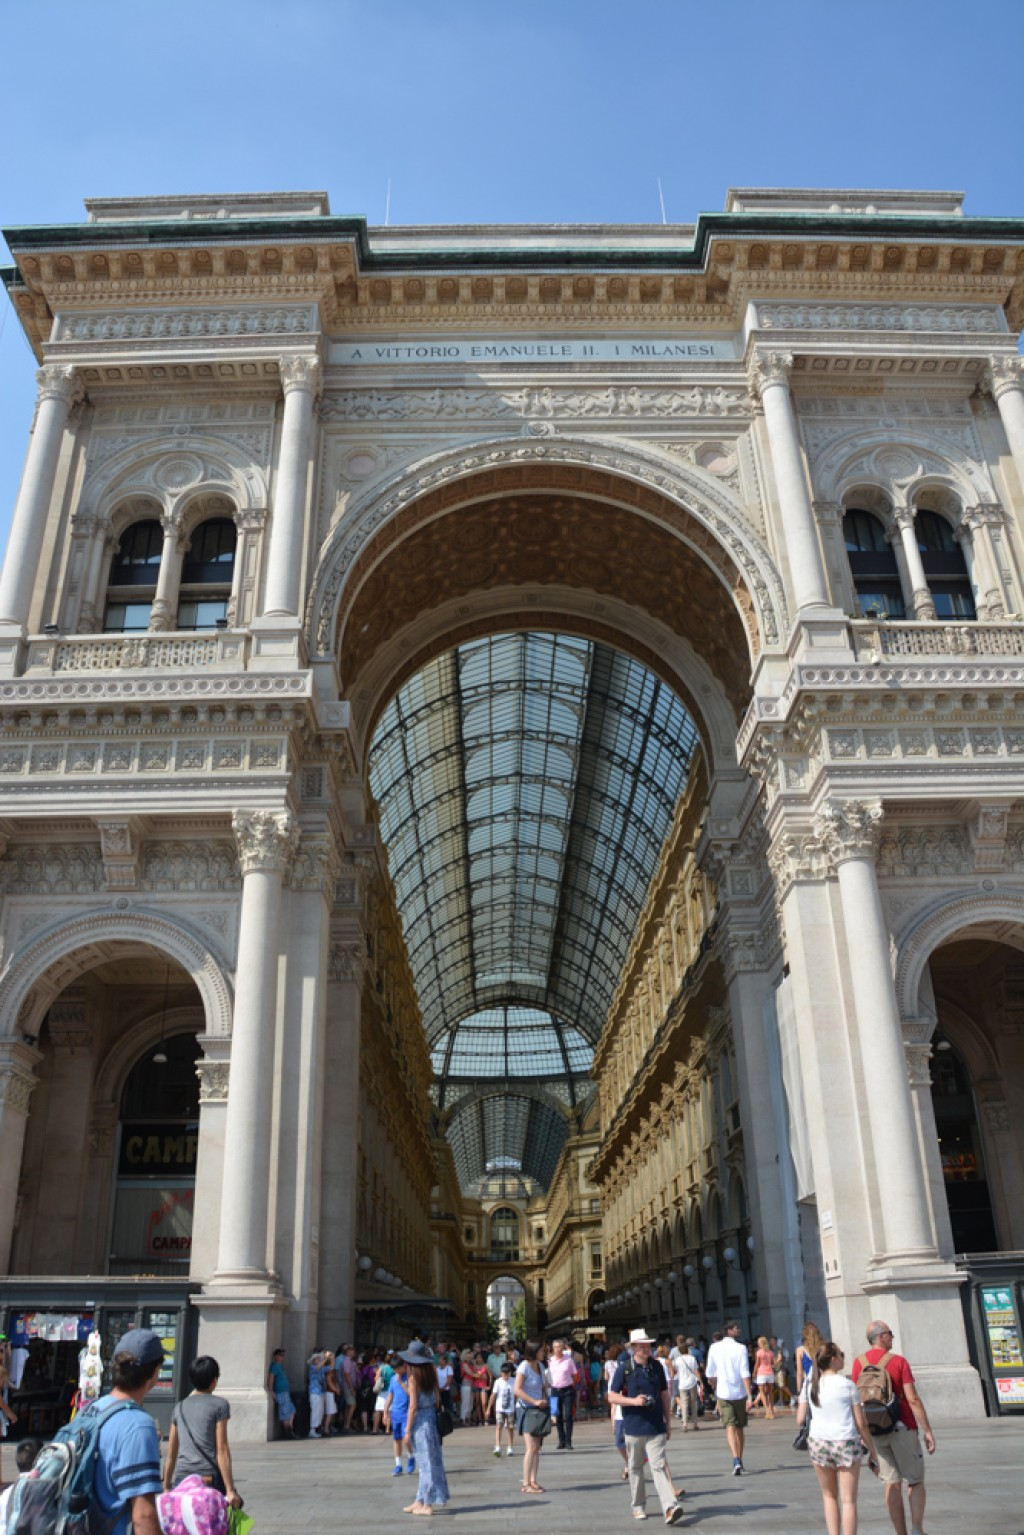 Shopping mall / Gallery beside the Milan Cathedral